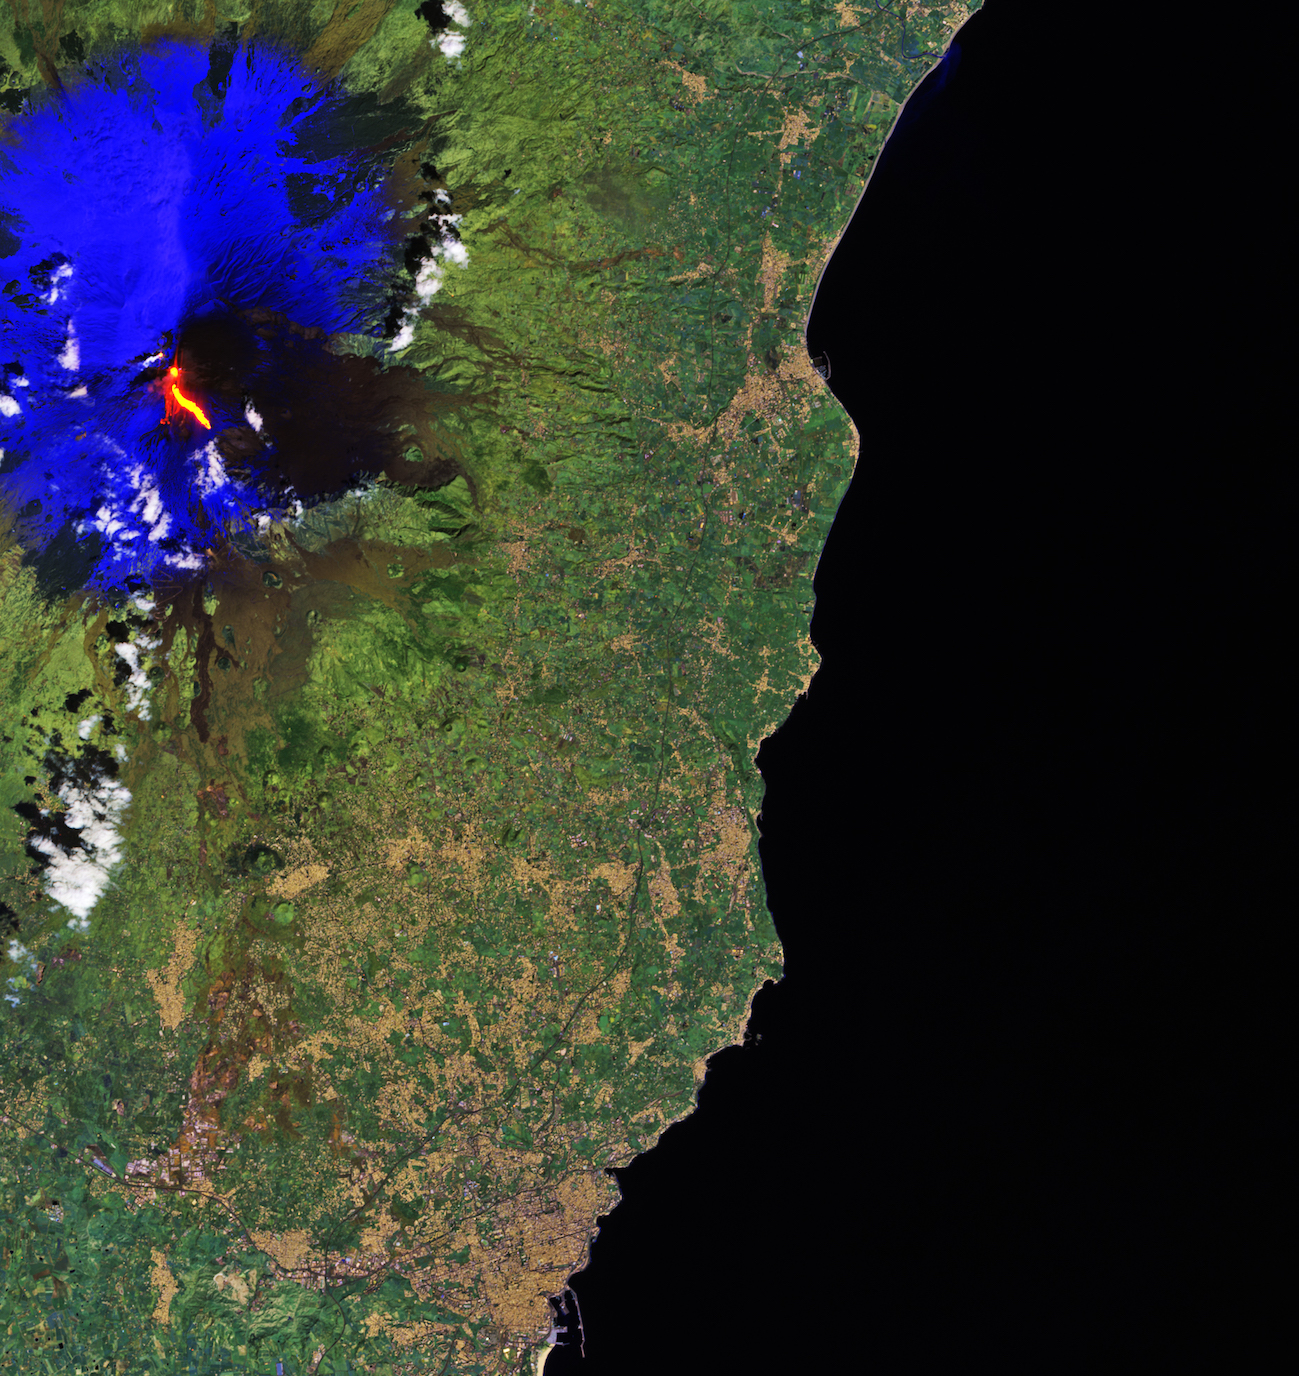 Today's Image of the Day comes from the European Space Agency and features a look at the erupting Mount Etna volcano in Sicily.